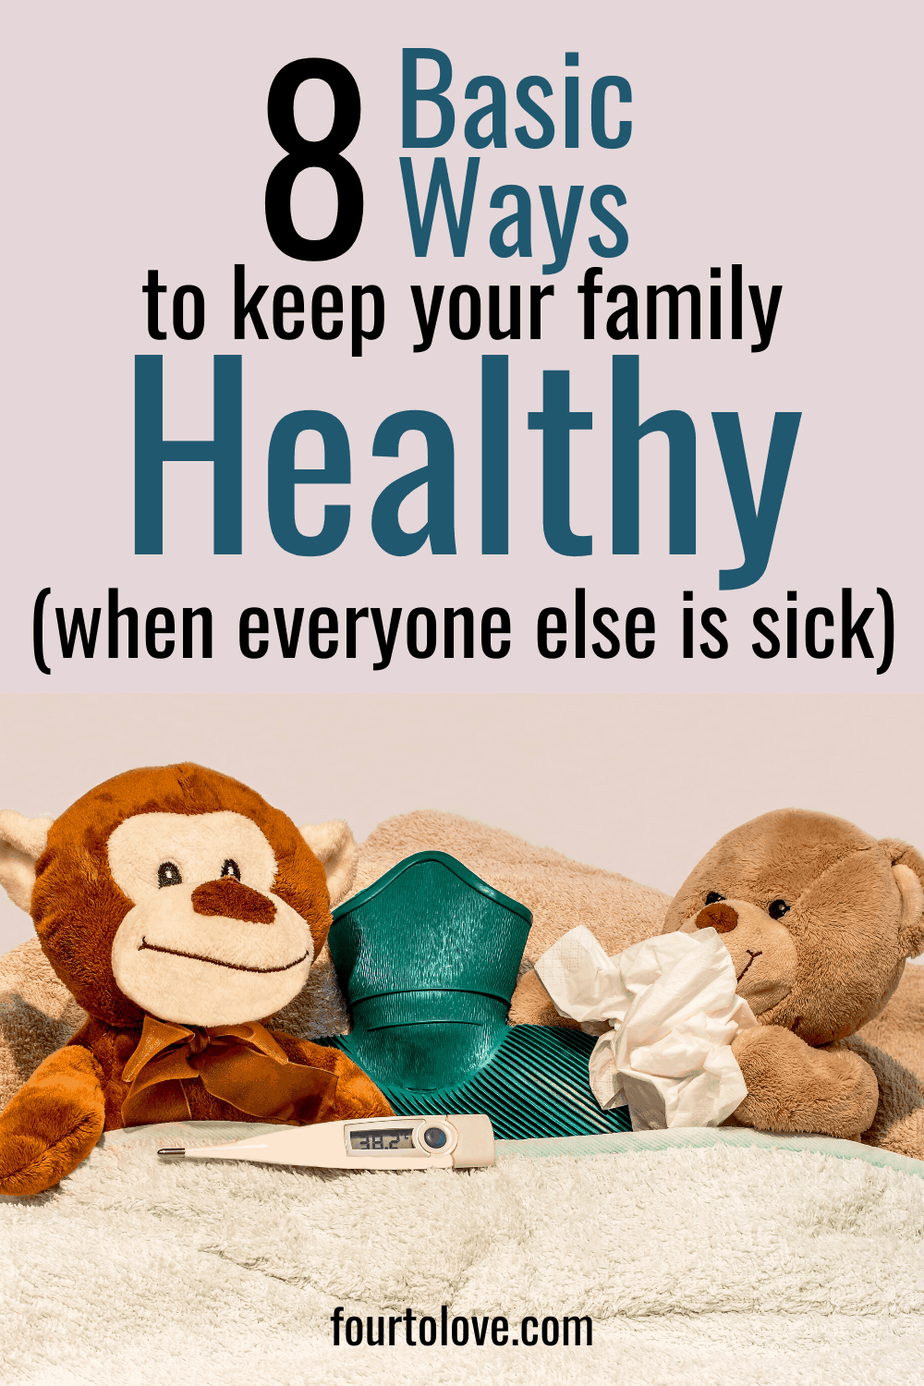 8 basic ways to keep your family healthy when everyone else is sick